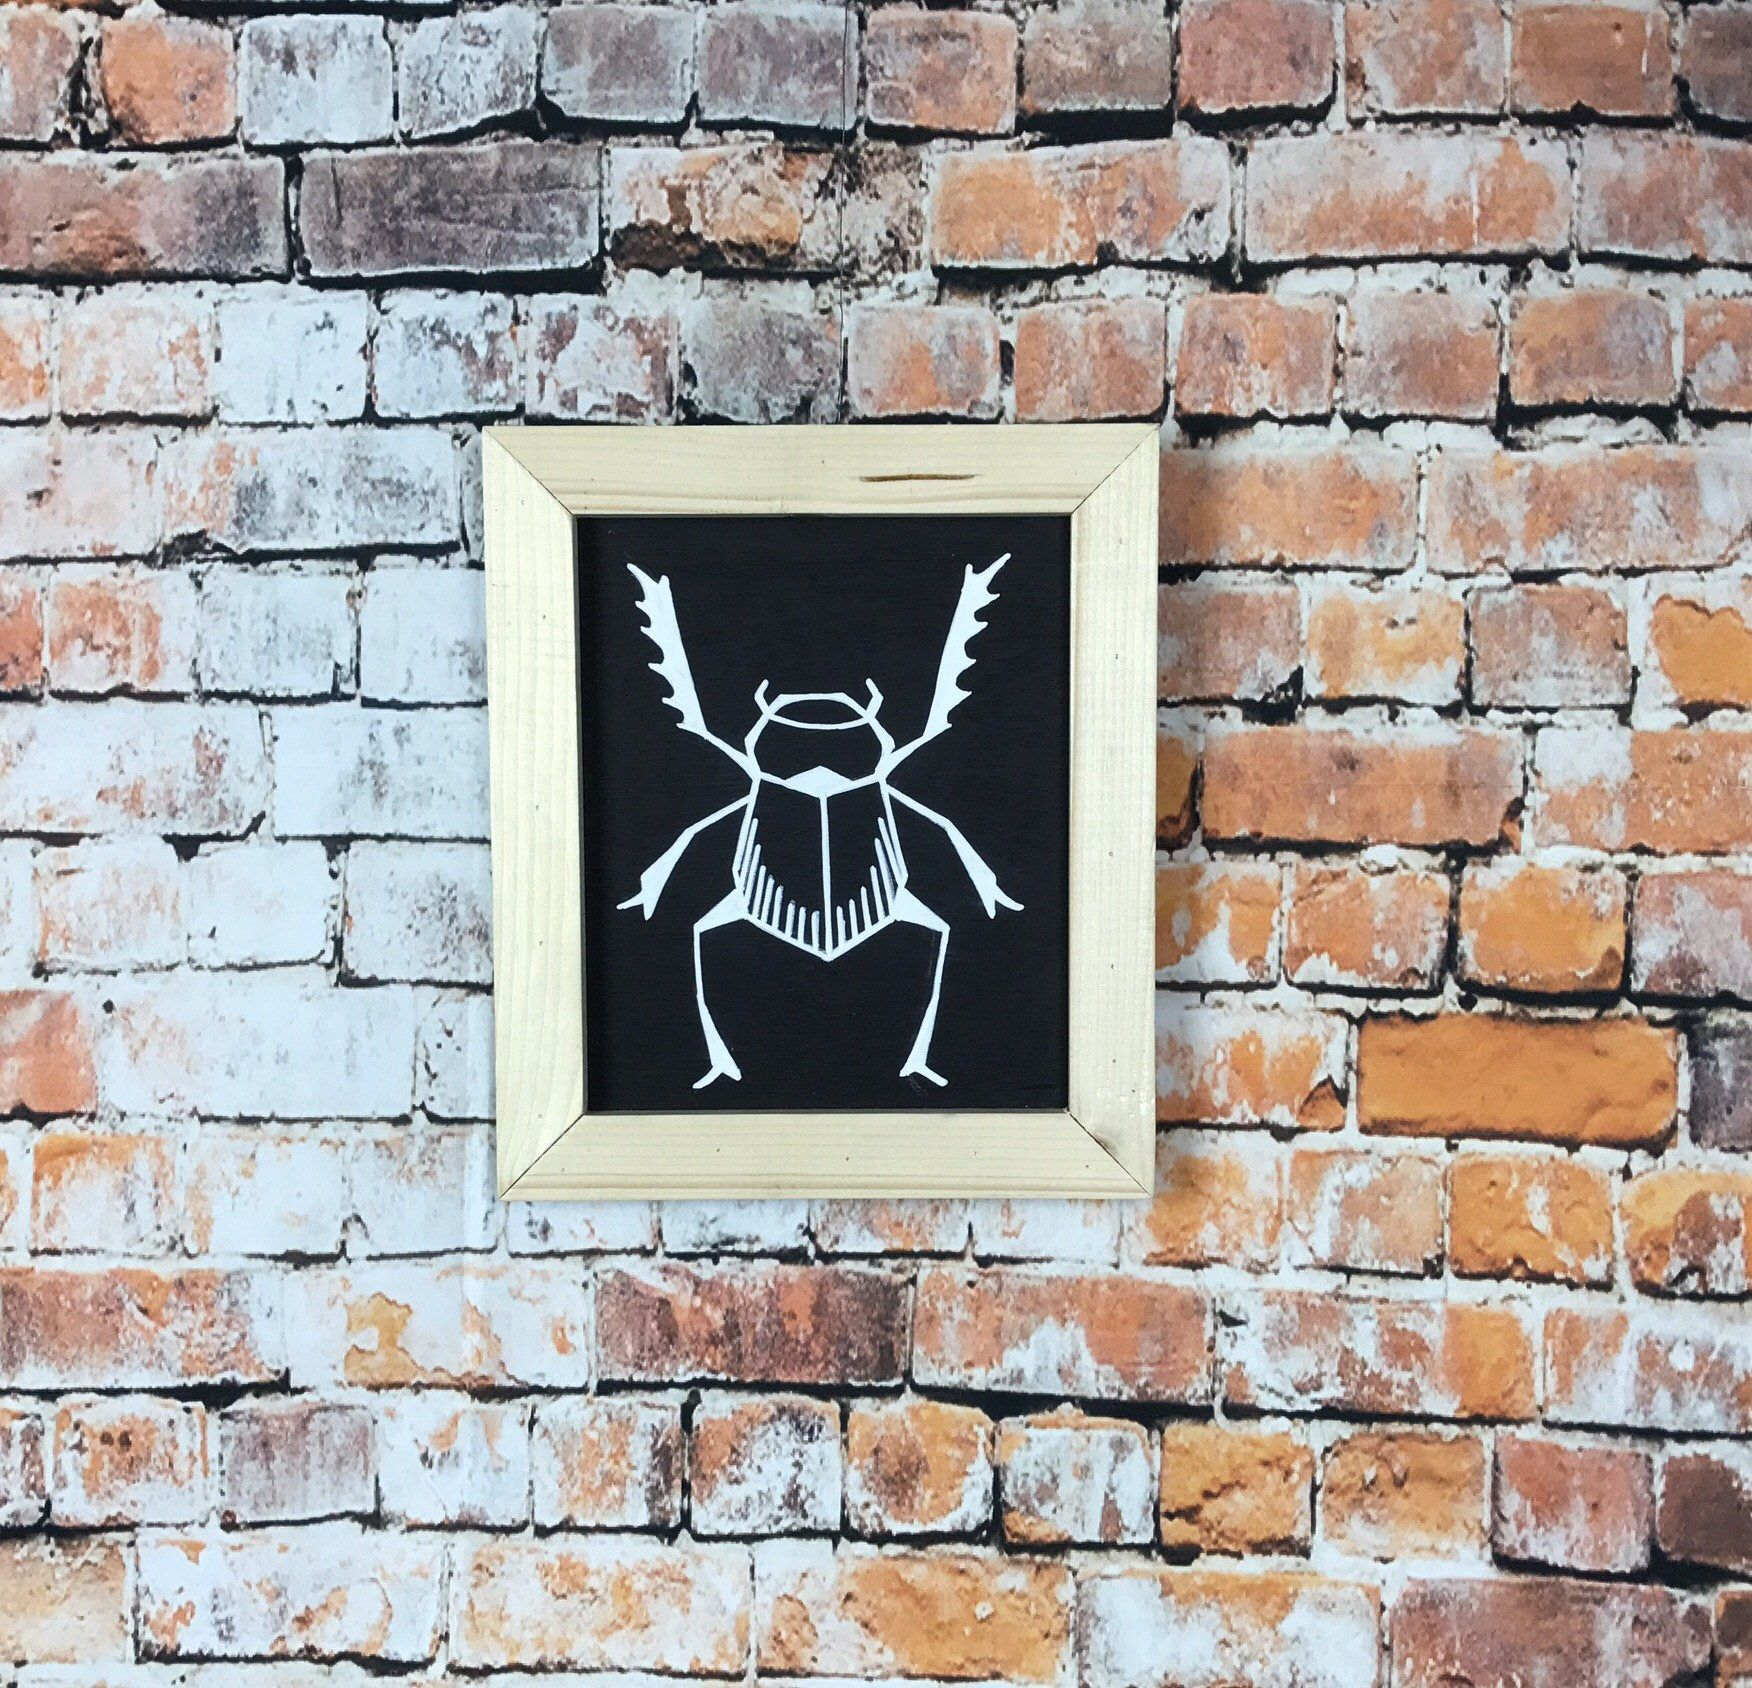 Insect wall decor reclaimed wood frame art beetle art wall wood boho chalk